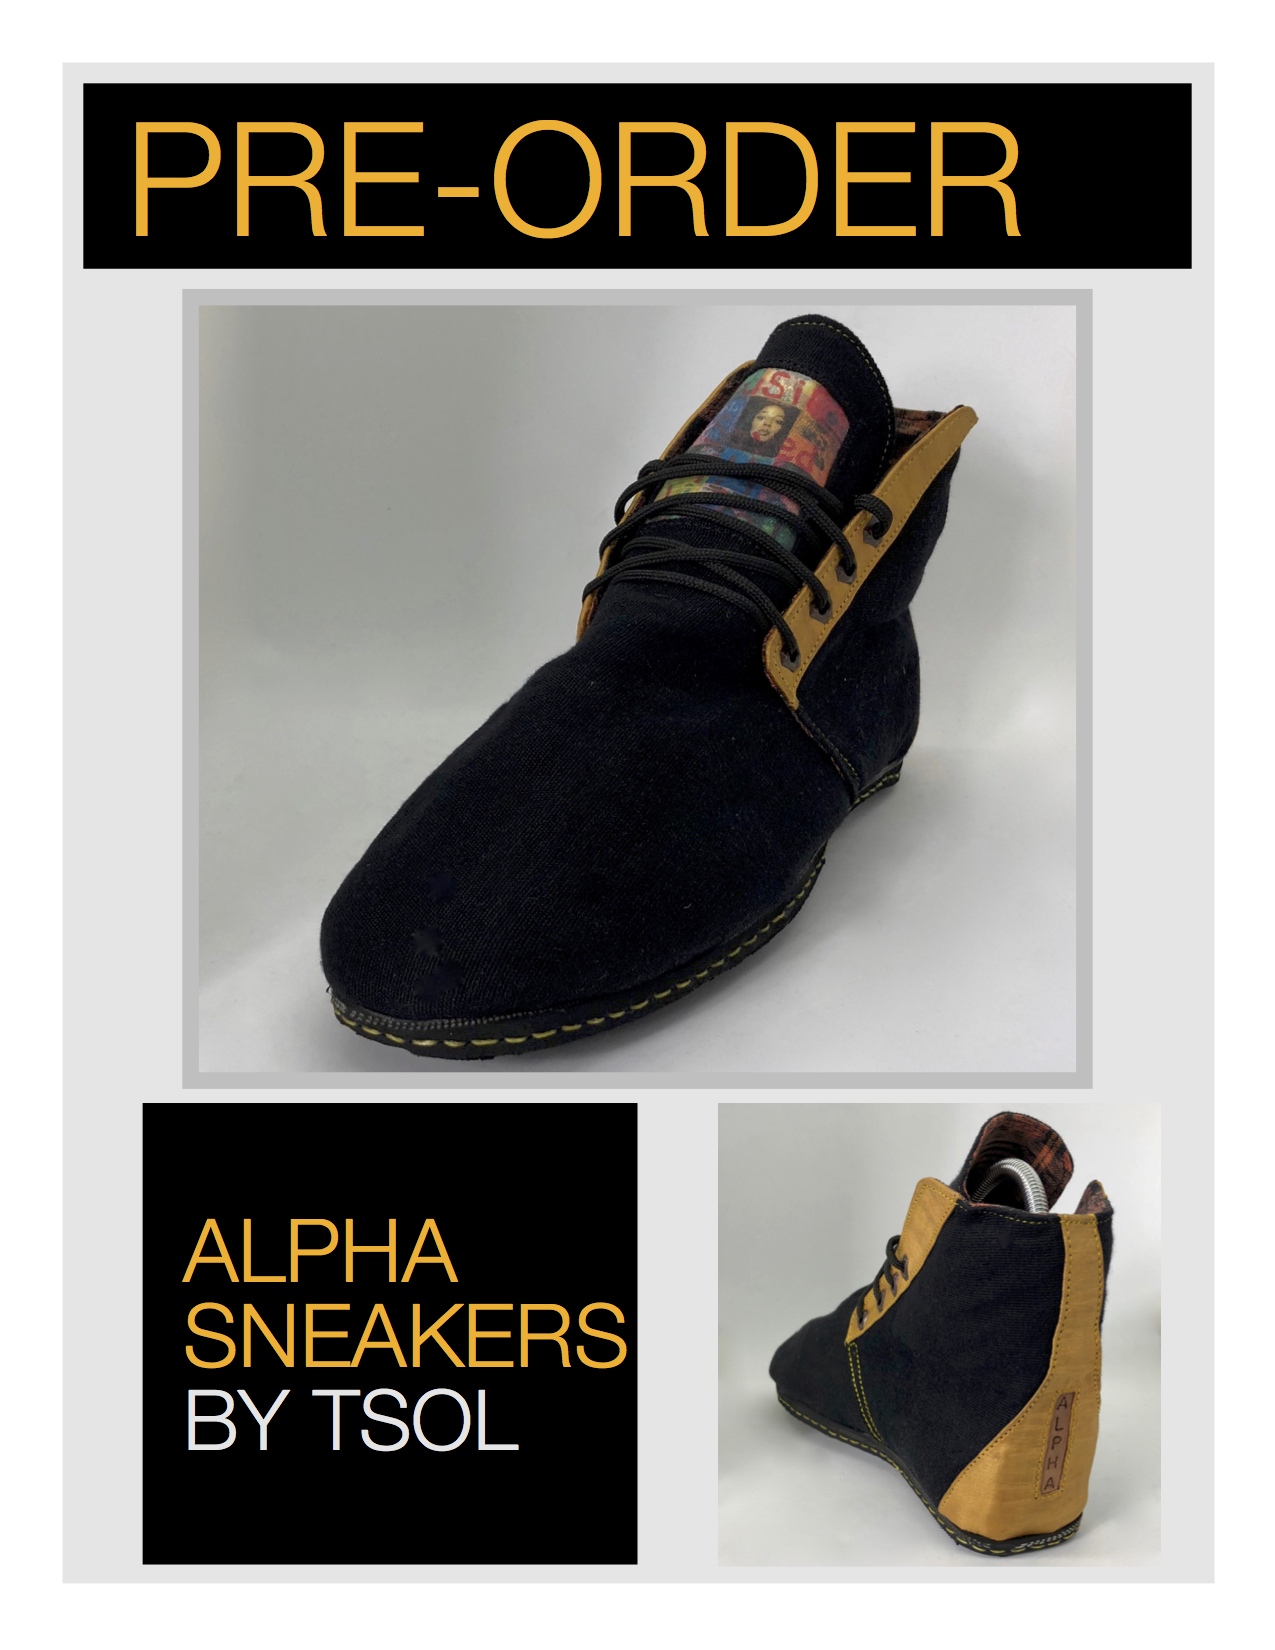 ALPHA Fraternity Sneakers by tsoL apparel - STEP IN COMFORTtsoL apparel's Tribute Series